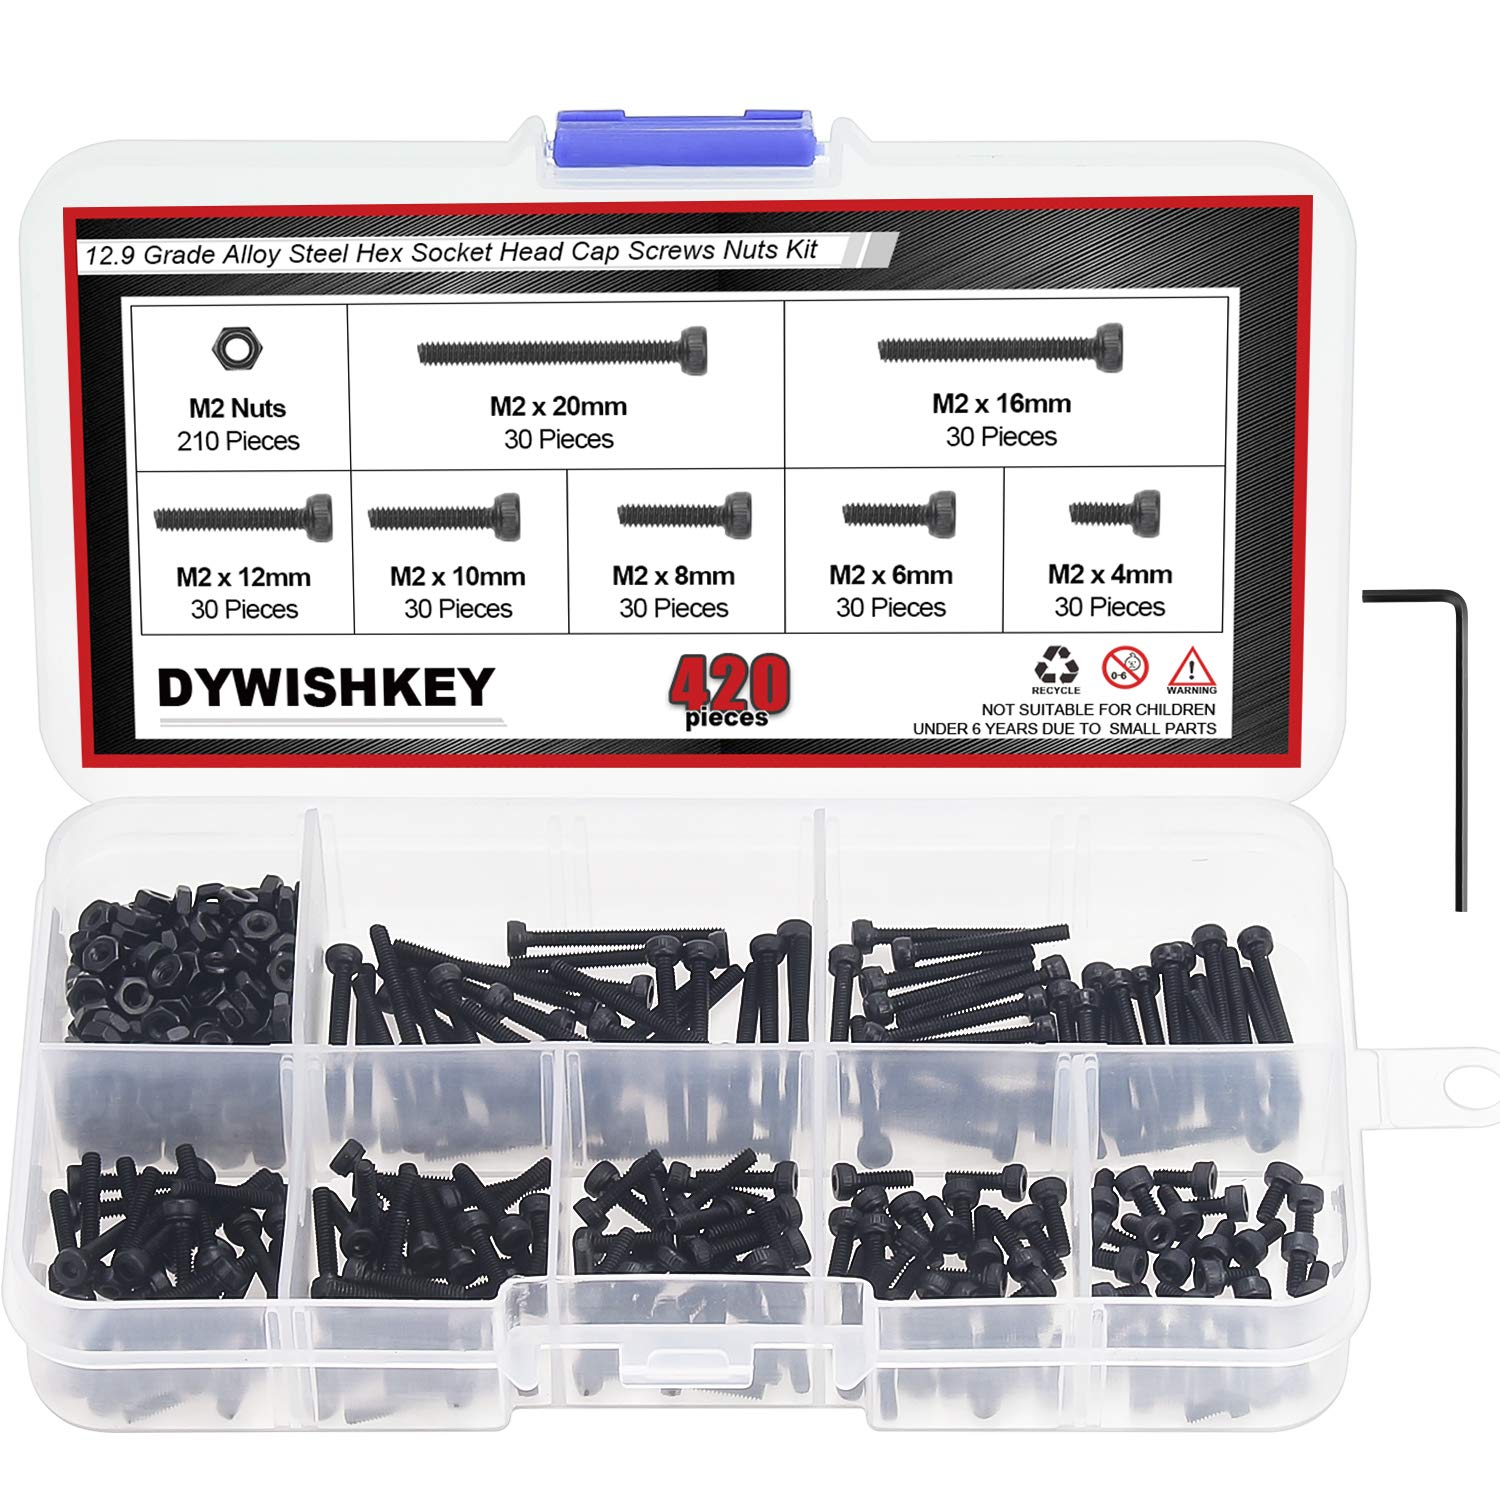 DYWISHKEY 420 Pieces M2 x 4mm/6mm/8mm/10mm/12mm/16mm/20mm, 12.9 Grade Alloy Steel Hex Socket Head Cap Bolts Screws Nuts Kit with Hex Wrench